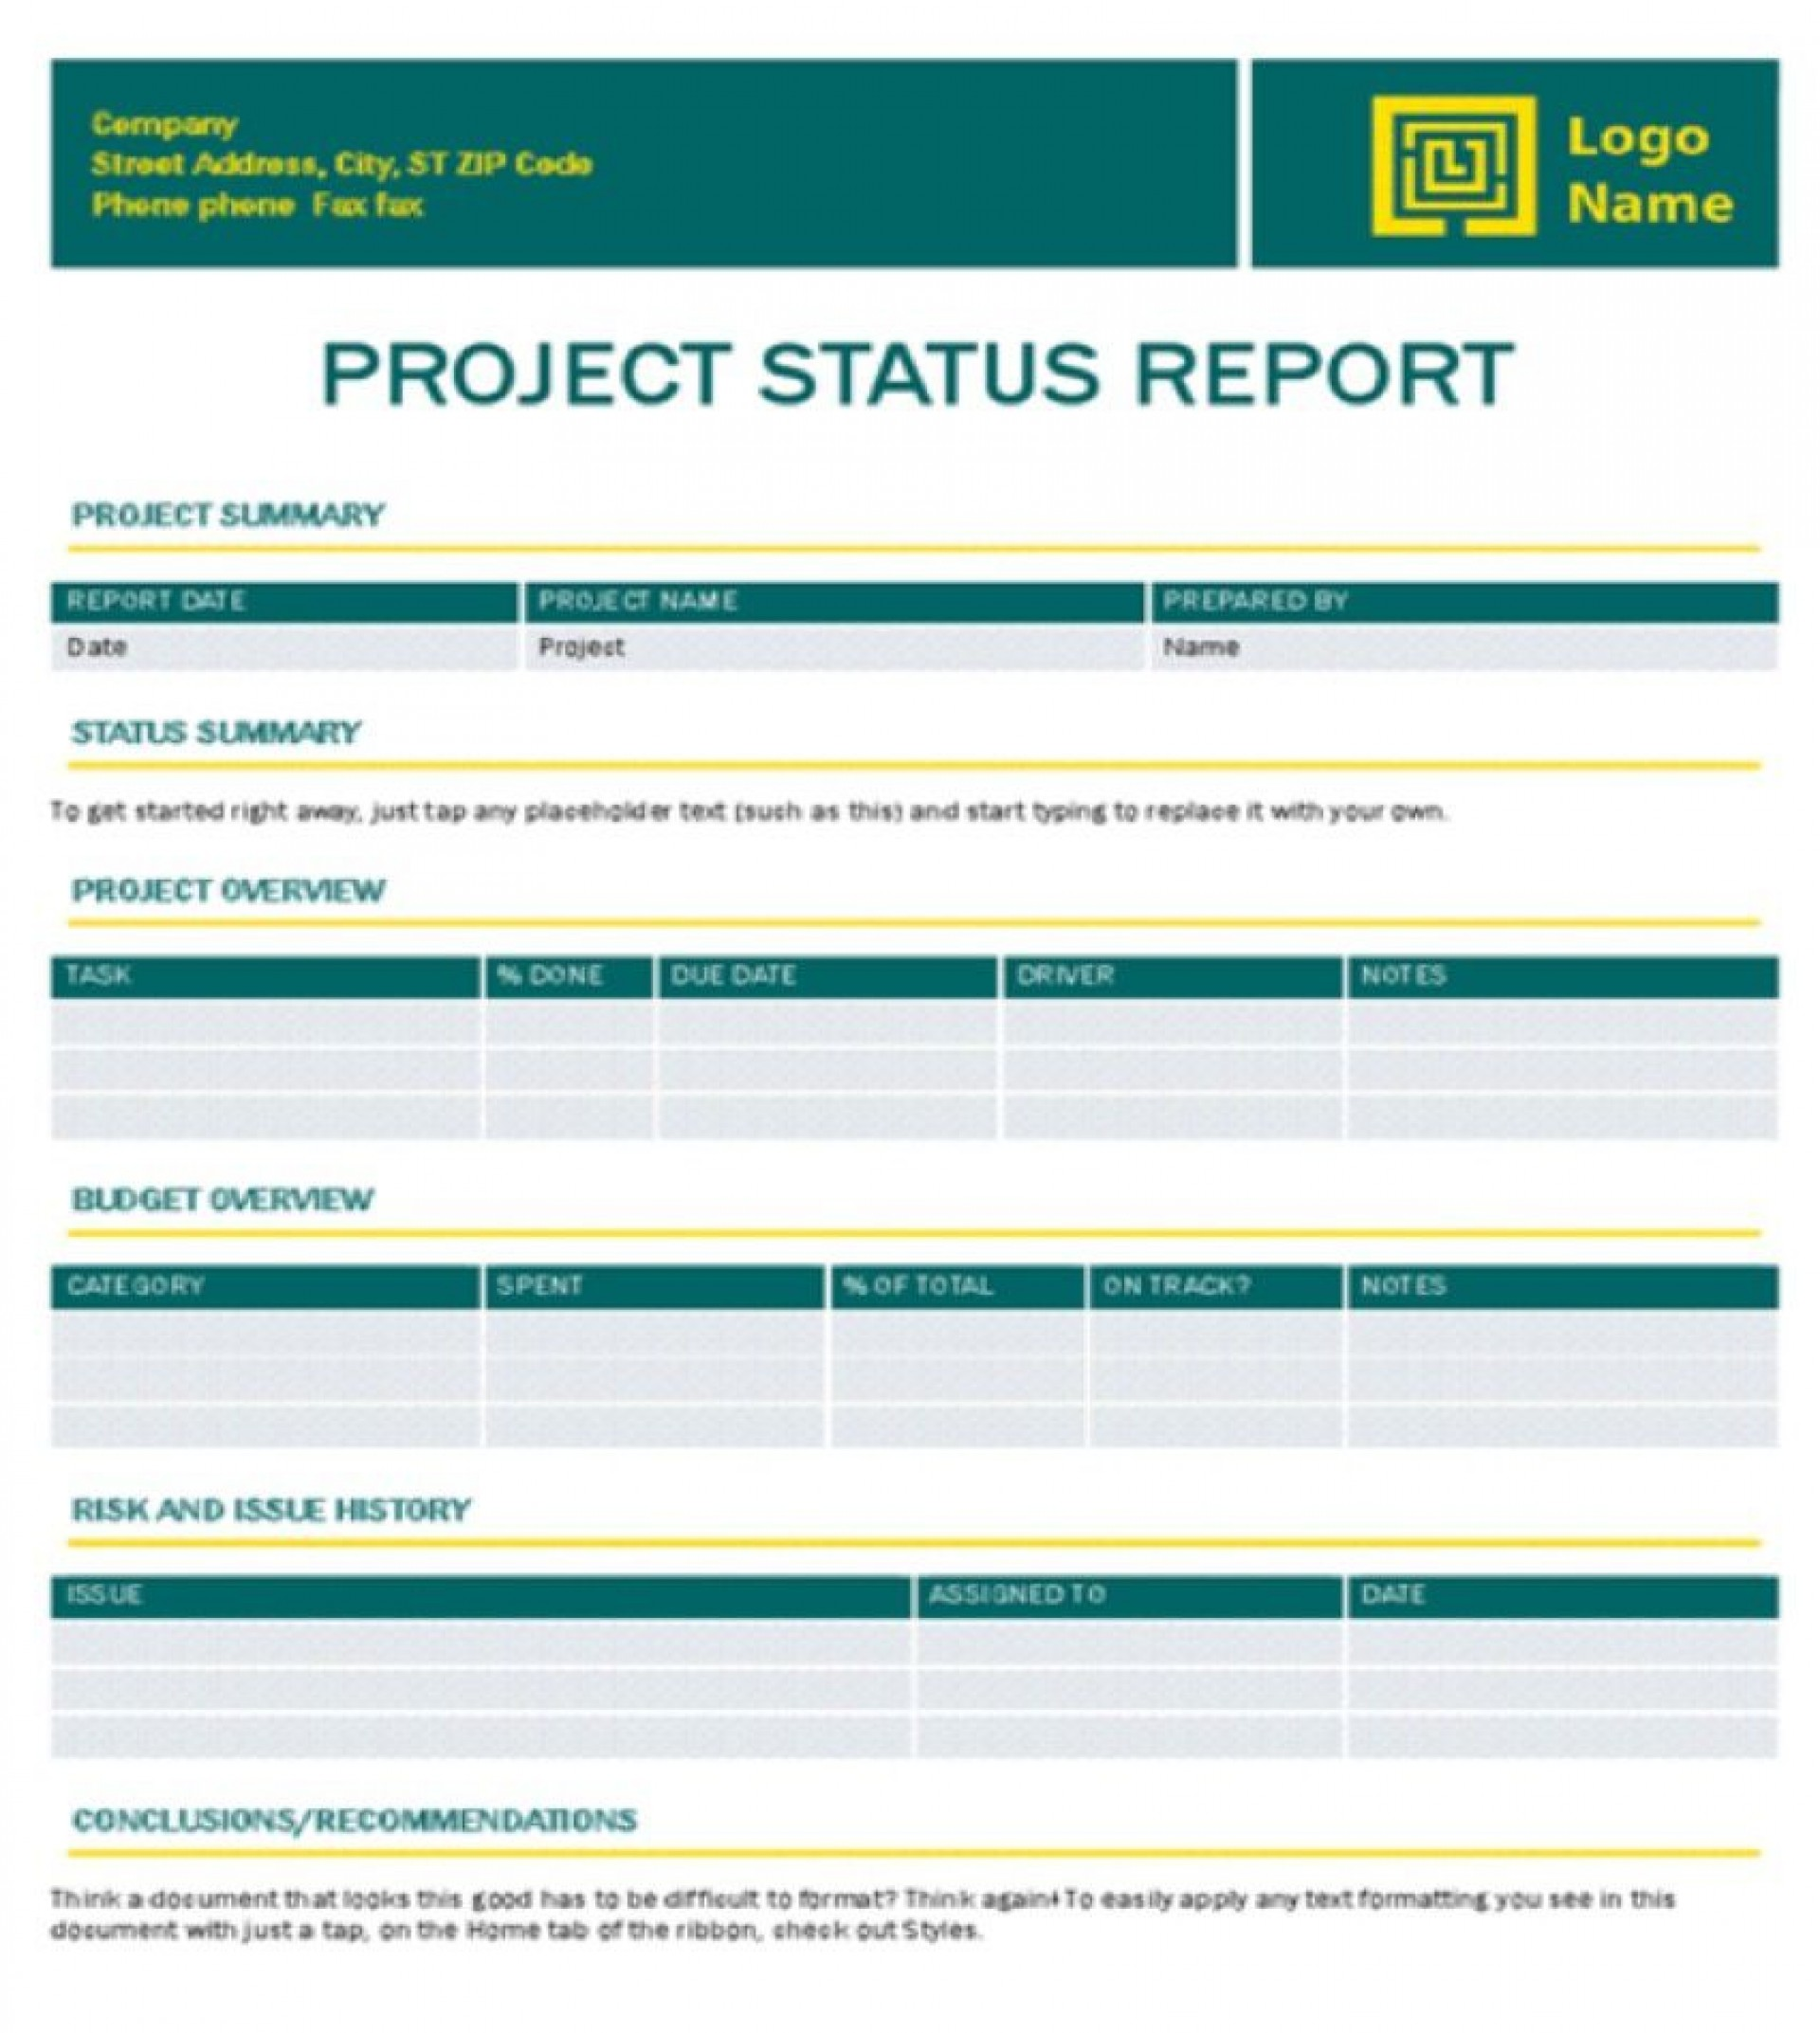 005 Unusual Project Management Weekly Statu Report Template Ppt High Resolution  Template+powerpoint1920